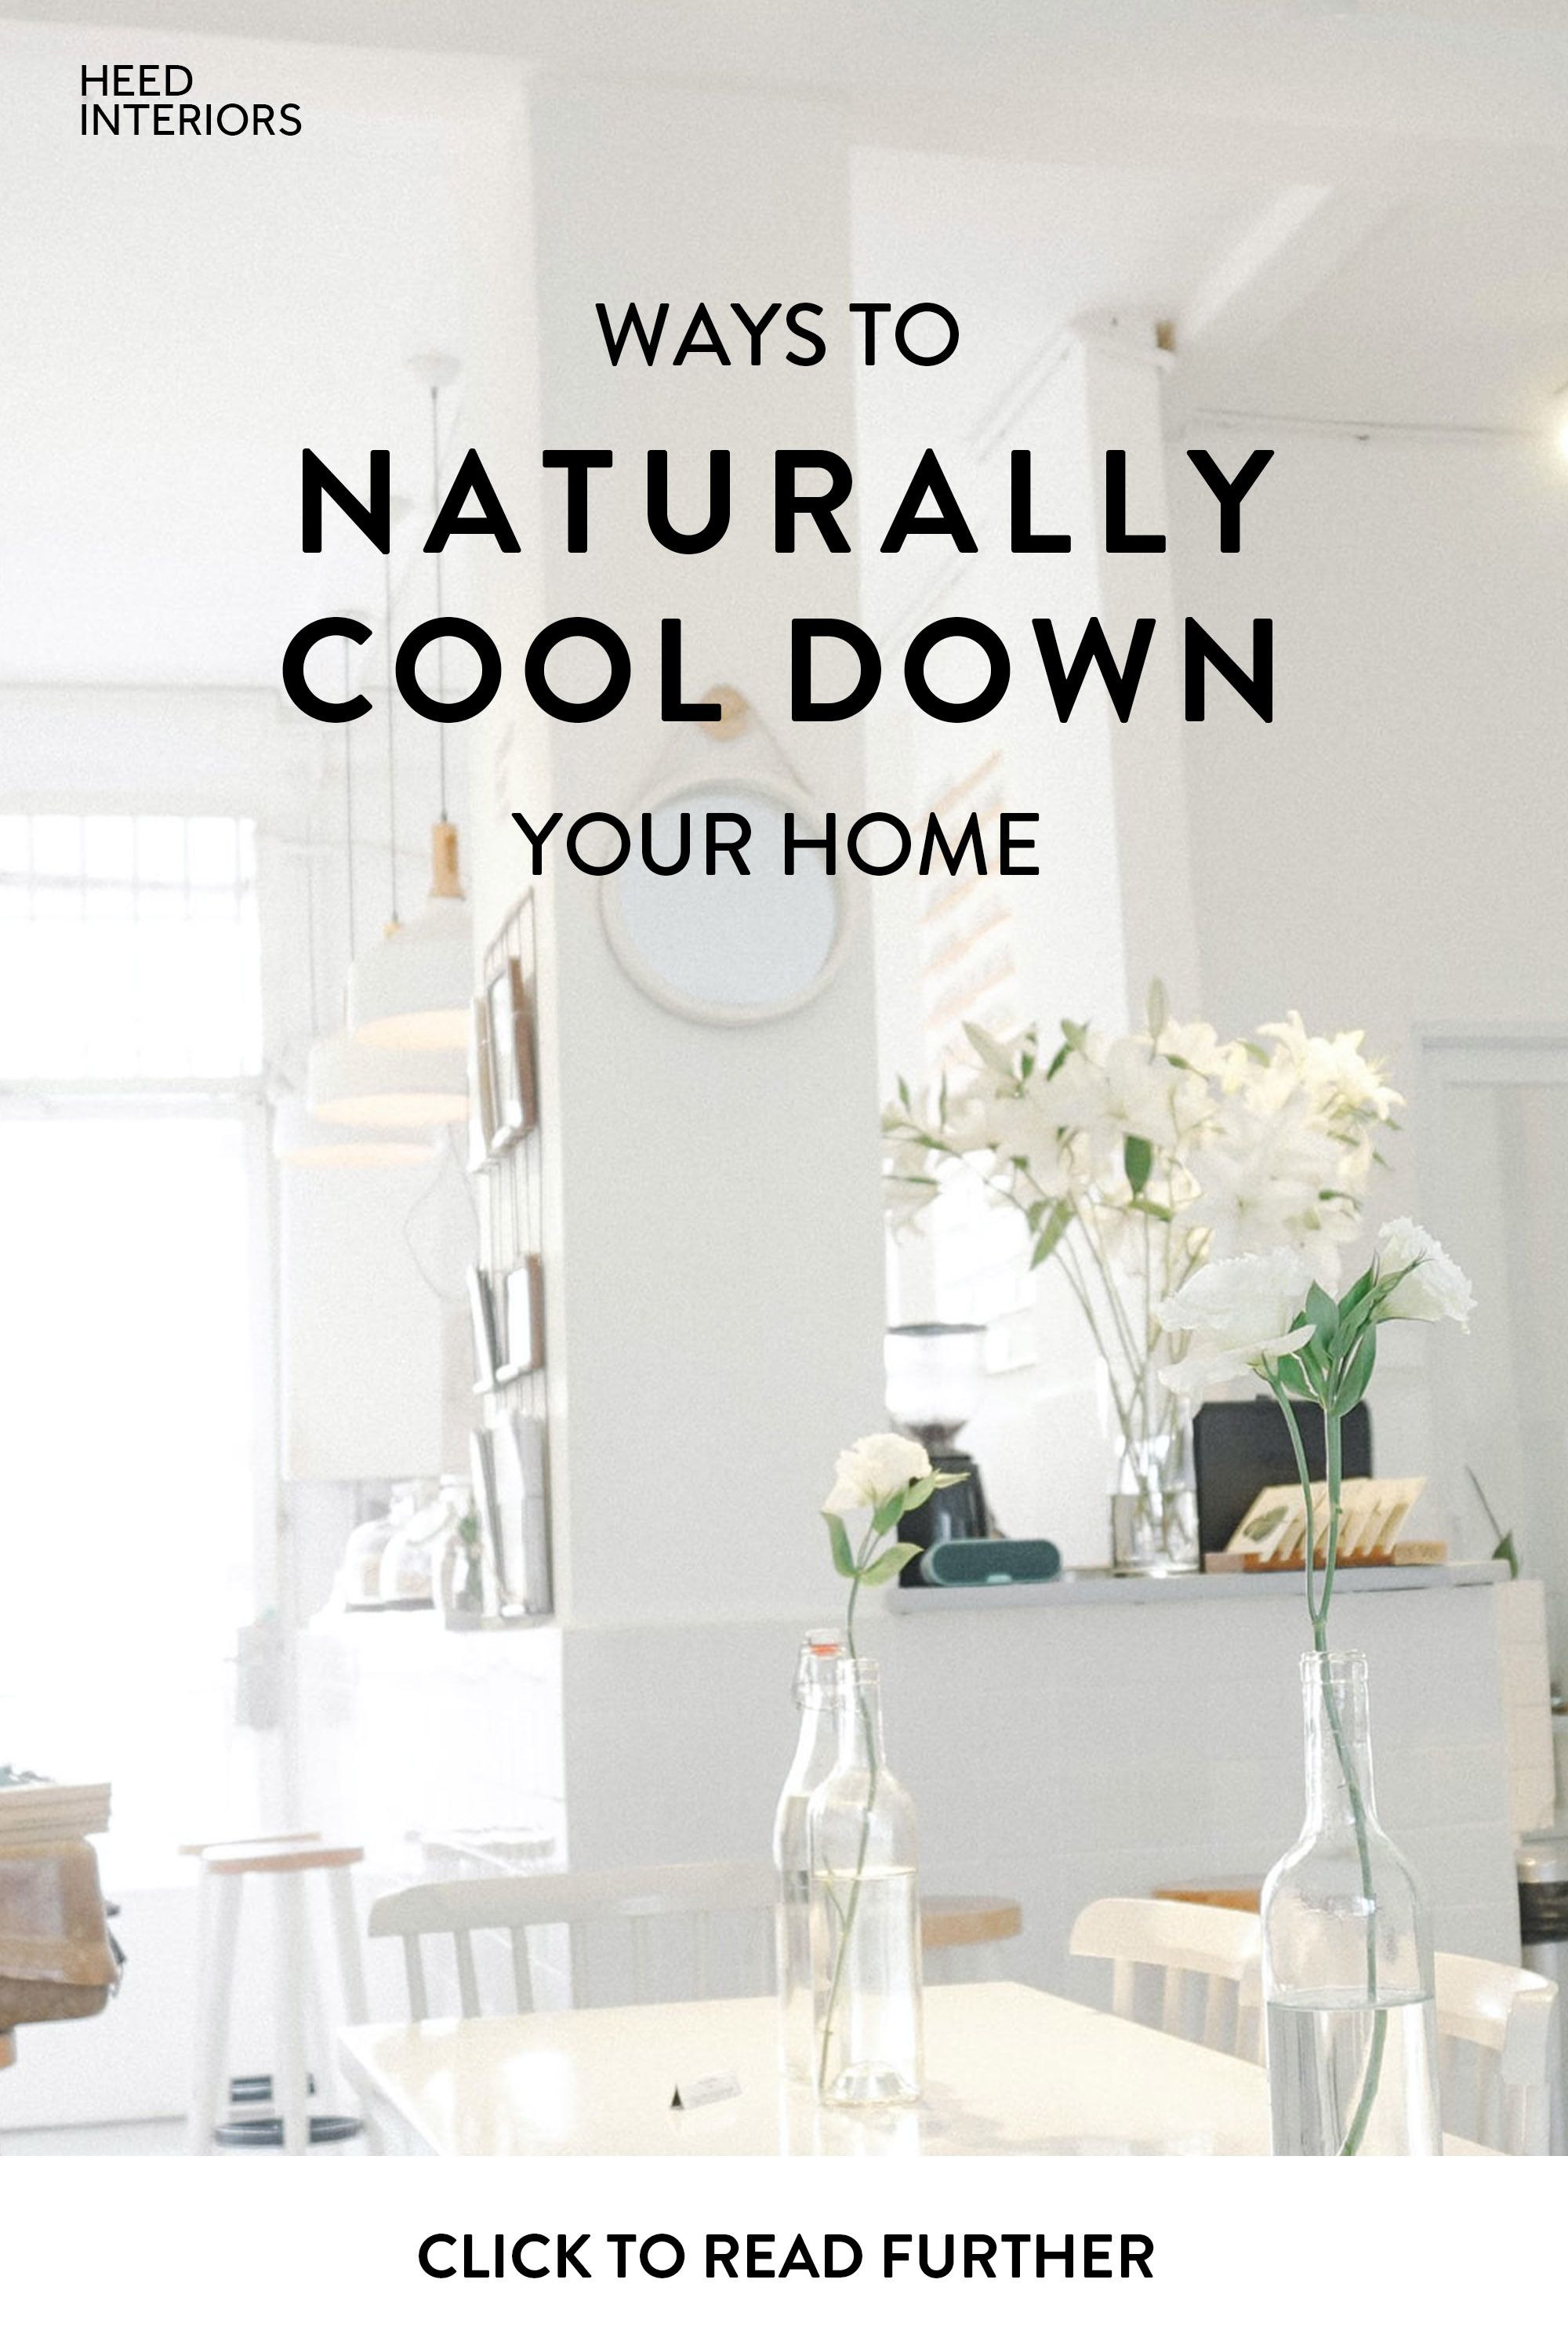 Natural Ways To Cool Down Your Home During Summer In 2020 Cool Stuff Build Your Own House Paint Your House